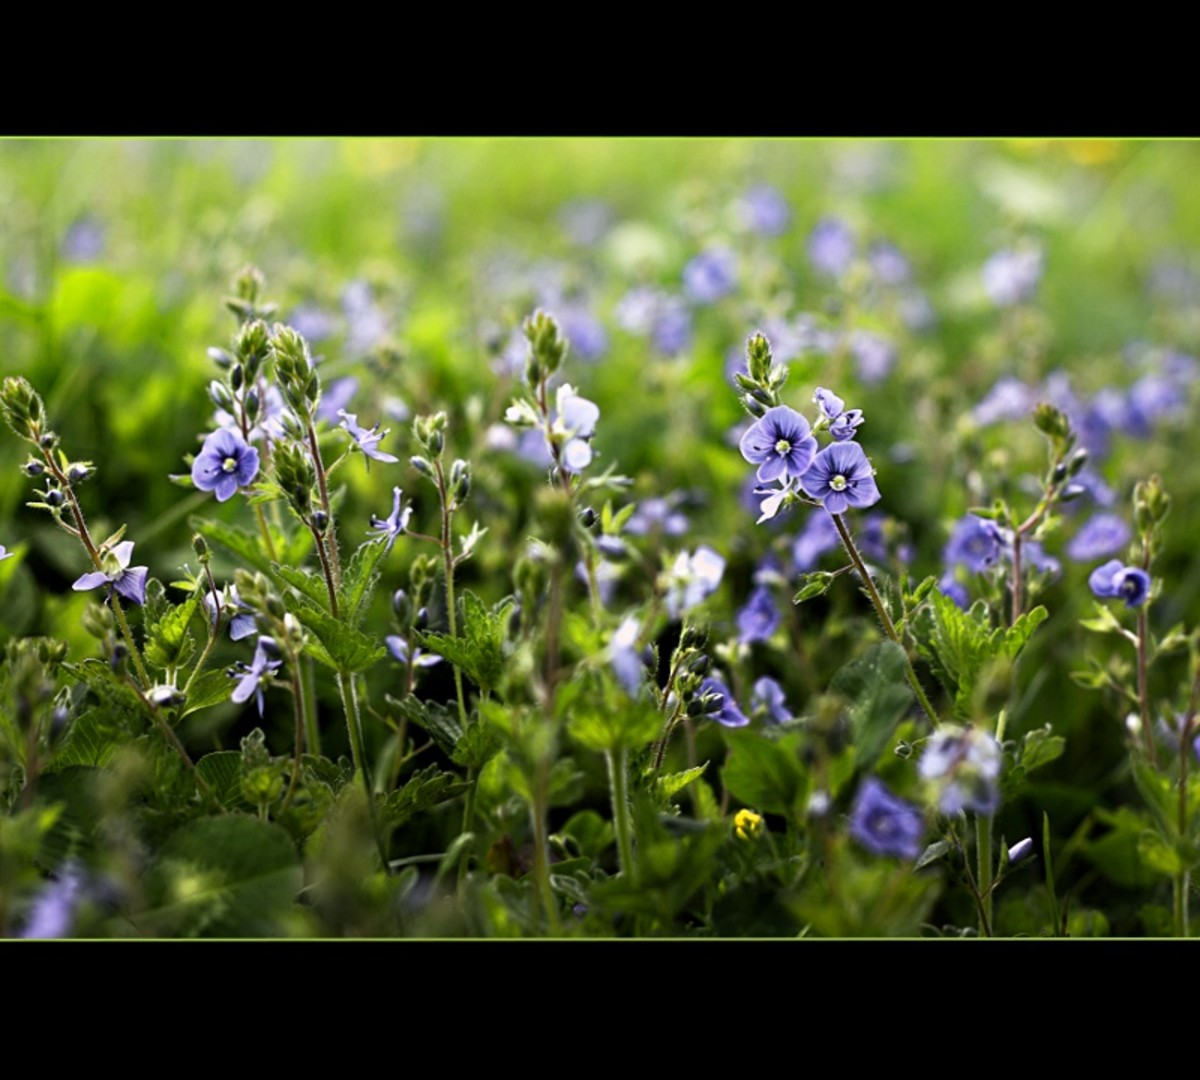 Flowers with Canon 50mm f/1.8 II